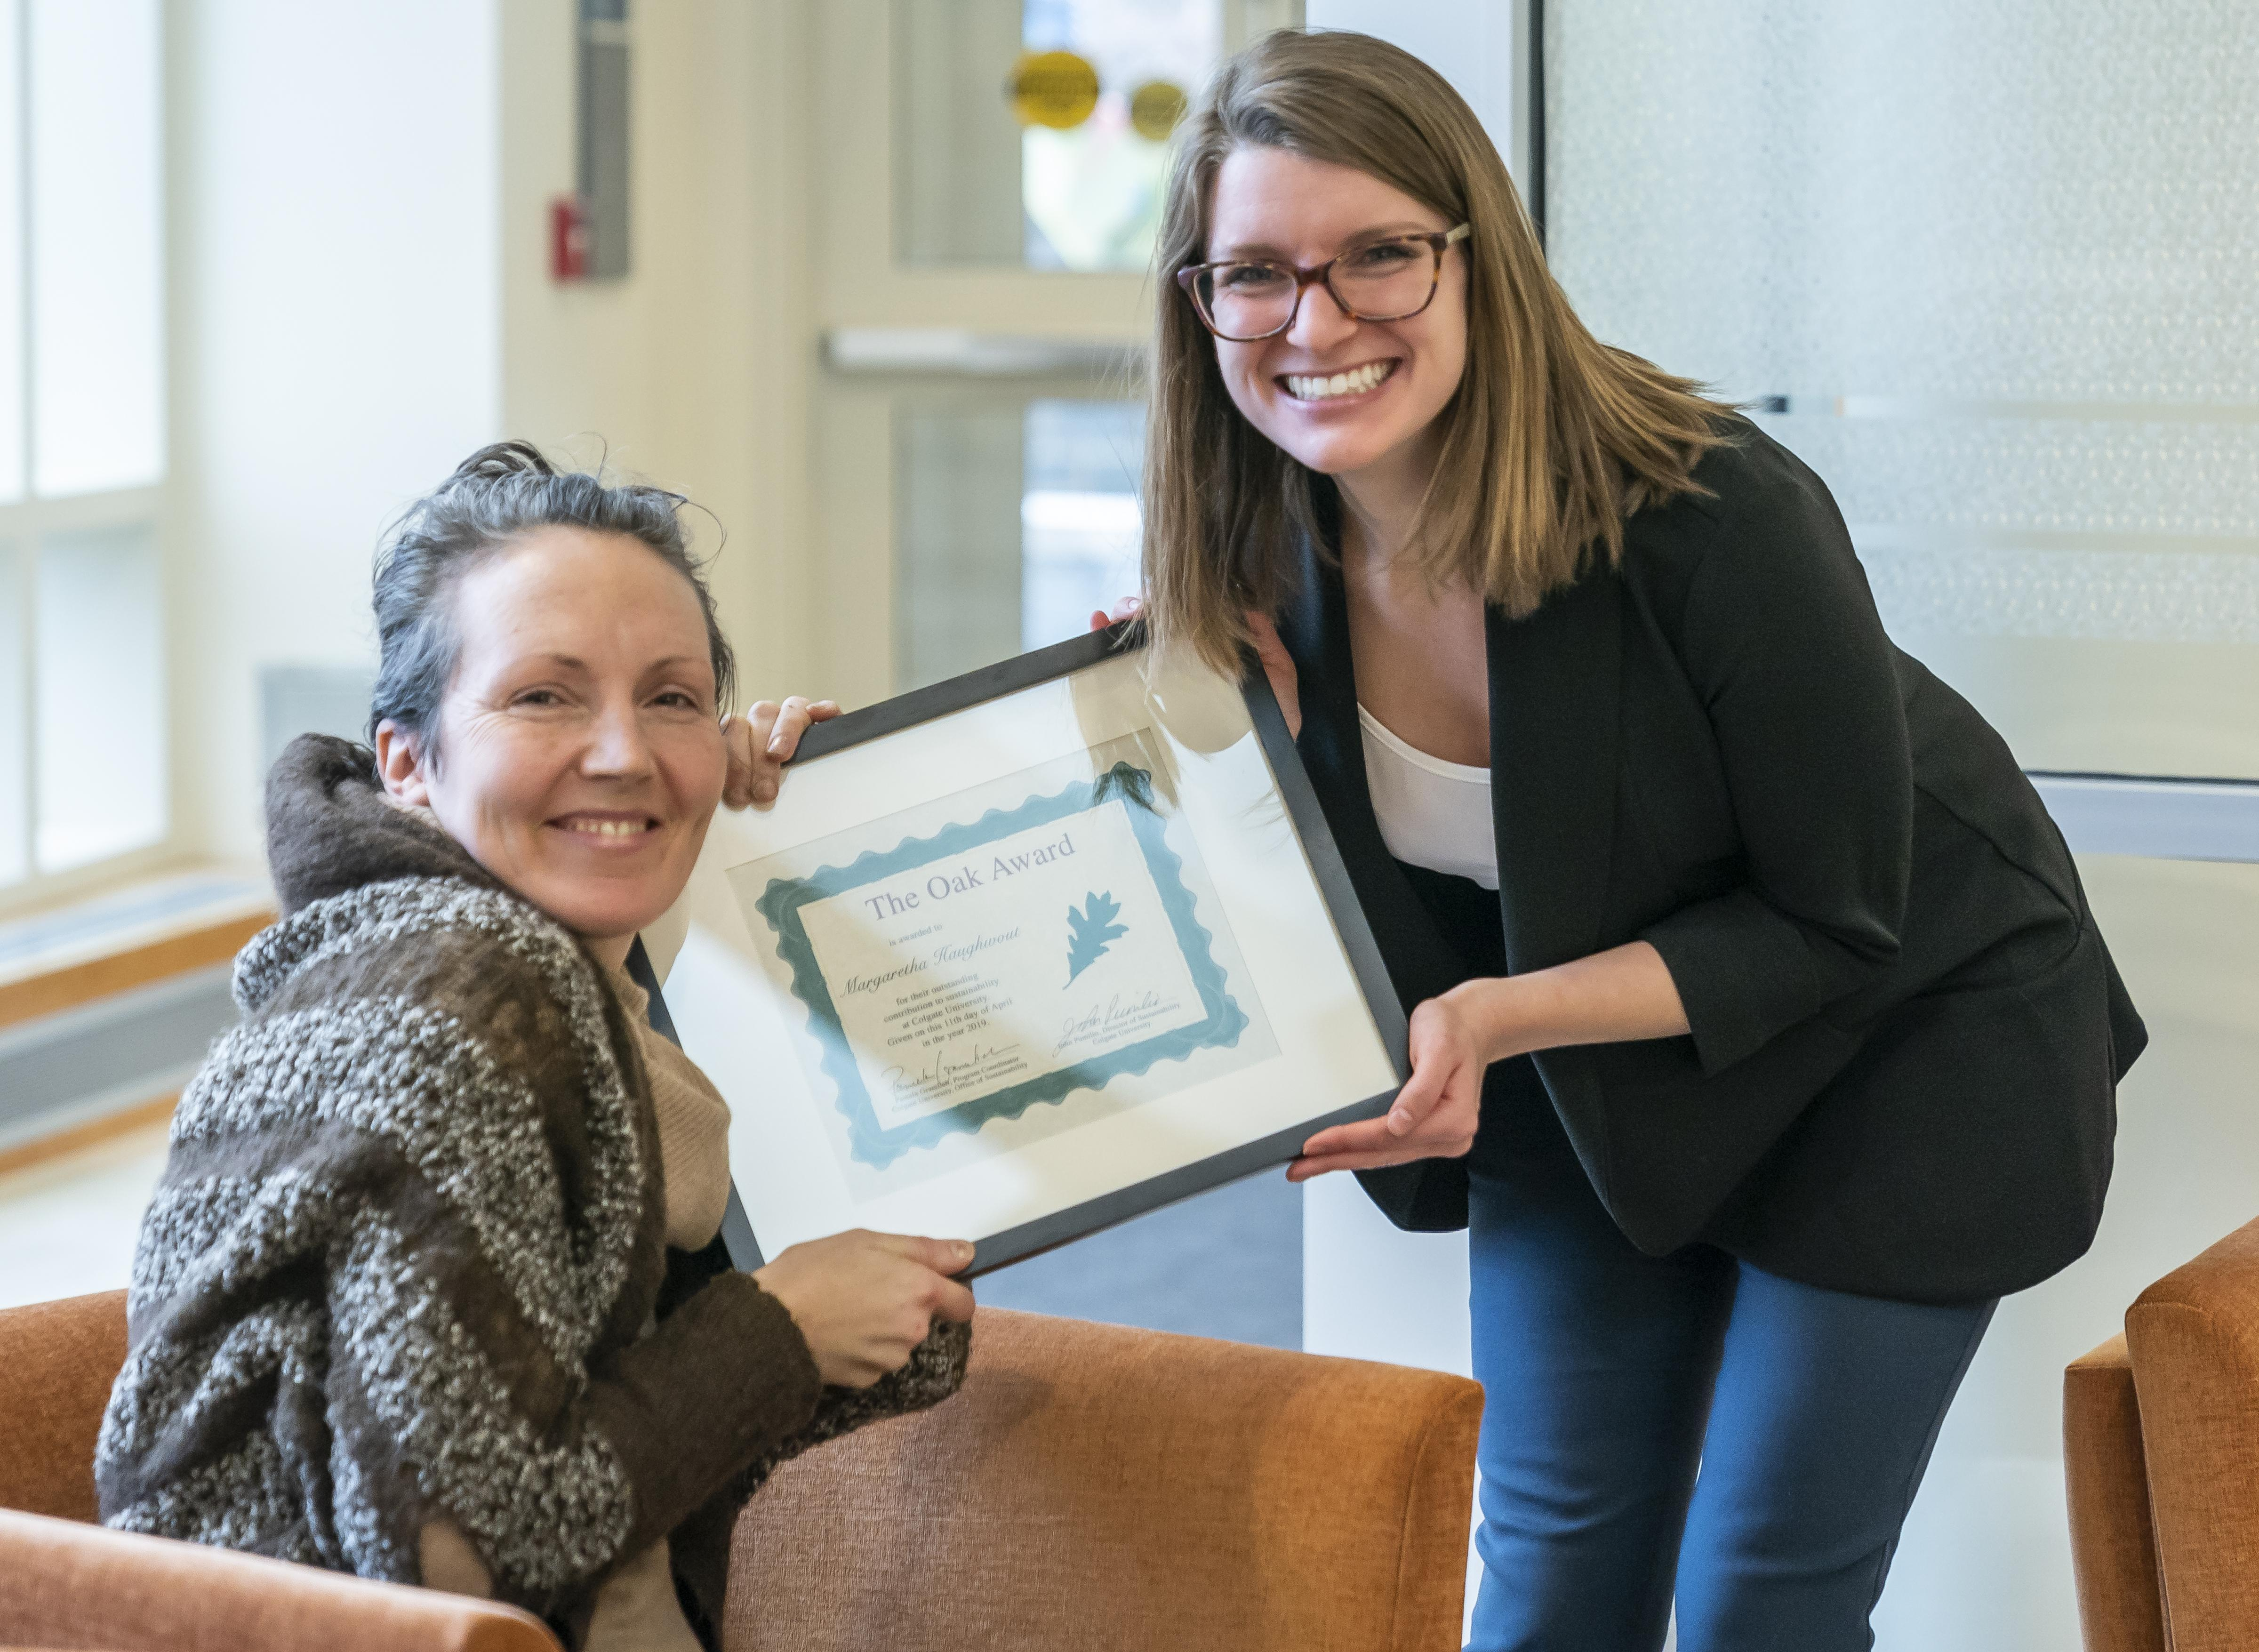 Pamela Gramlich presents an award to Professor Margaretha Haughwout at the Green Summit